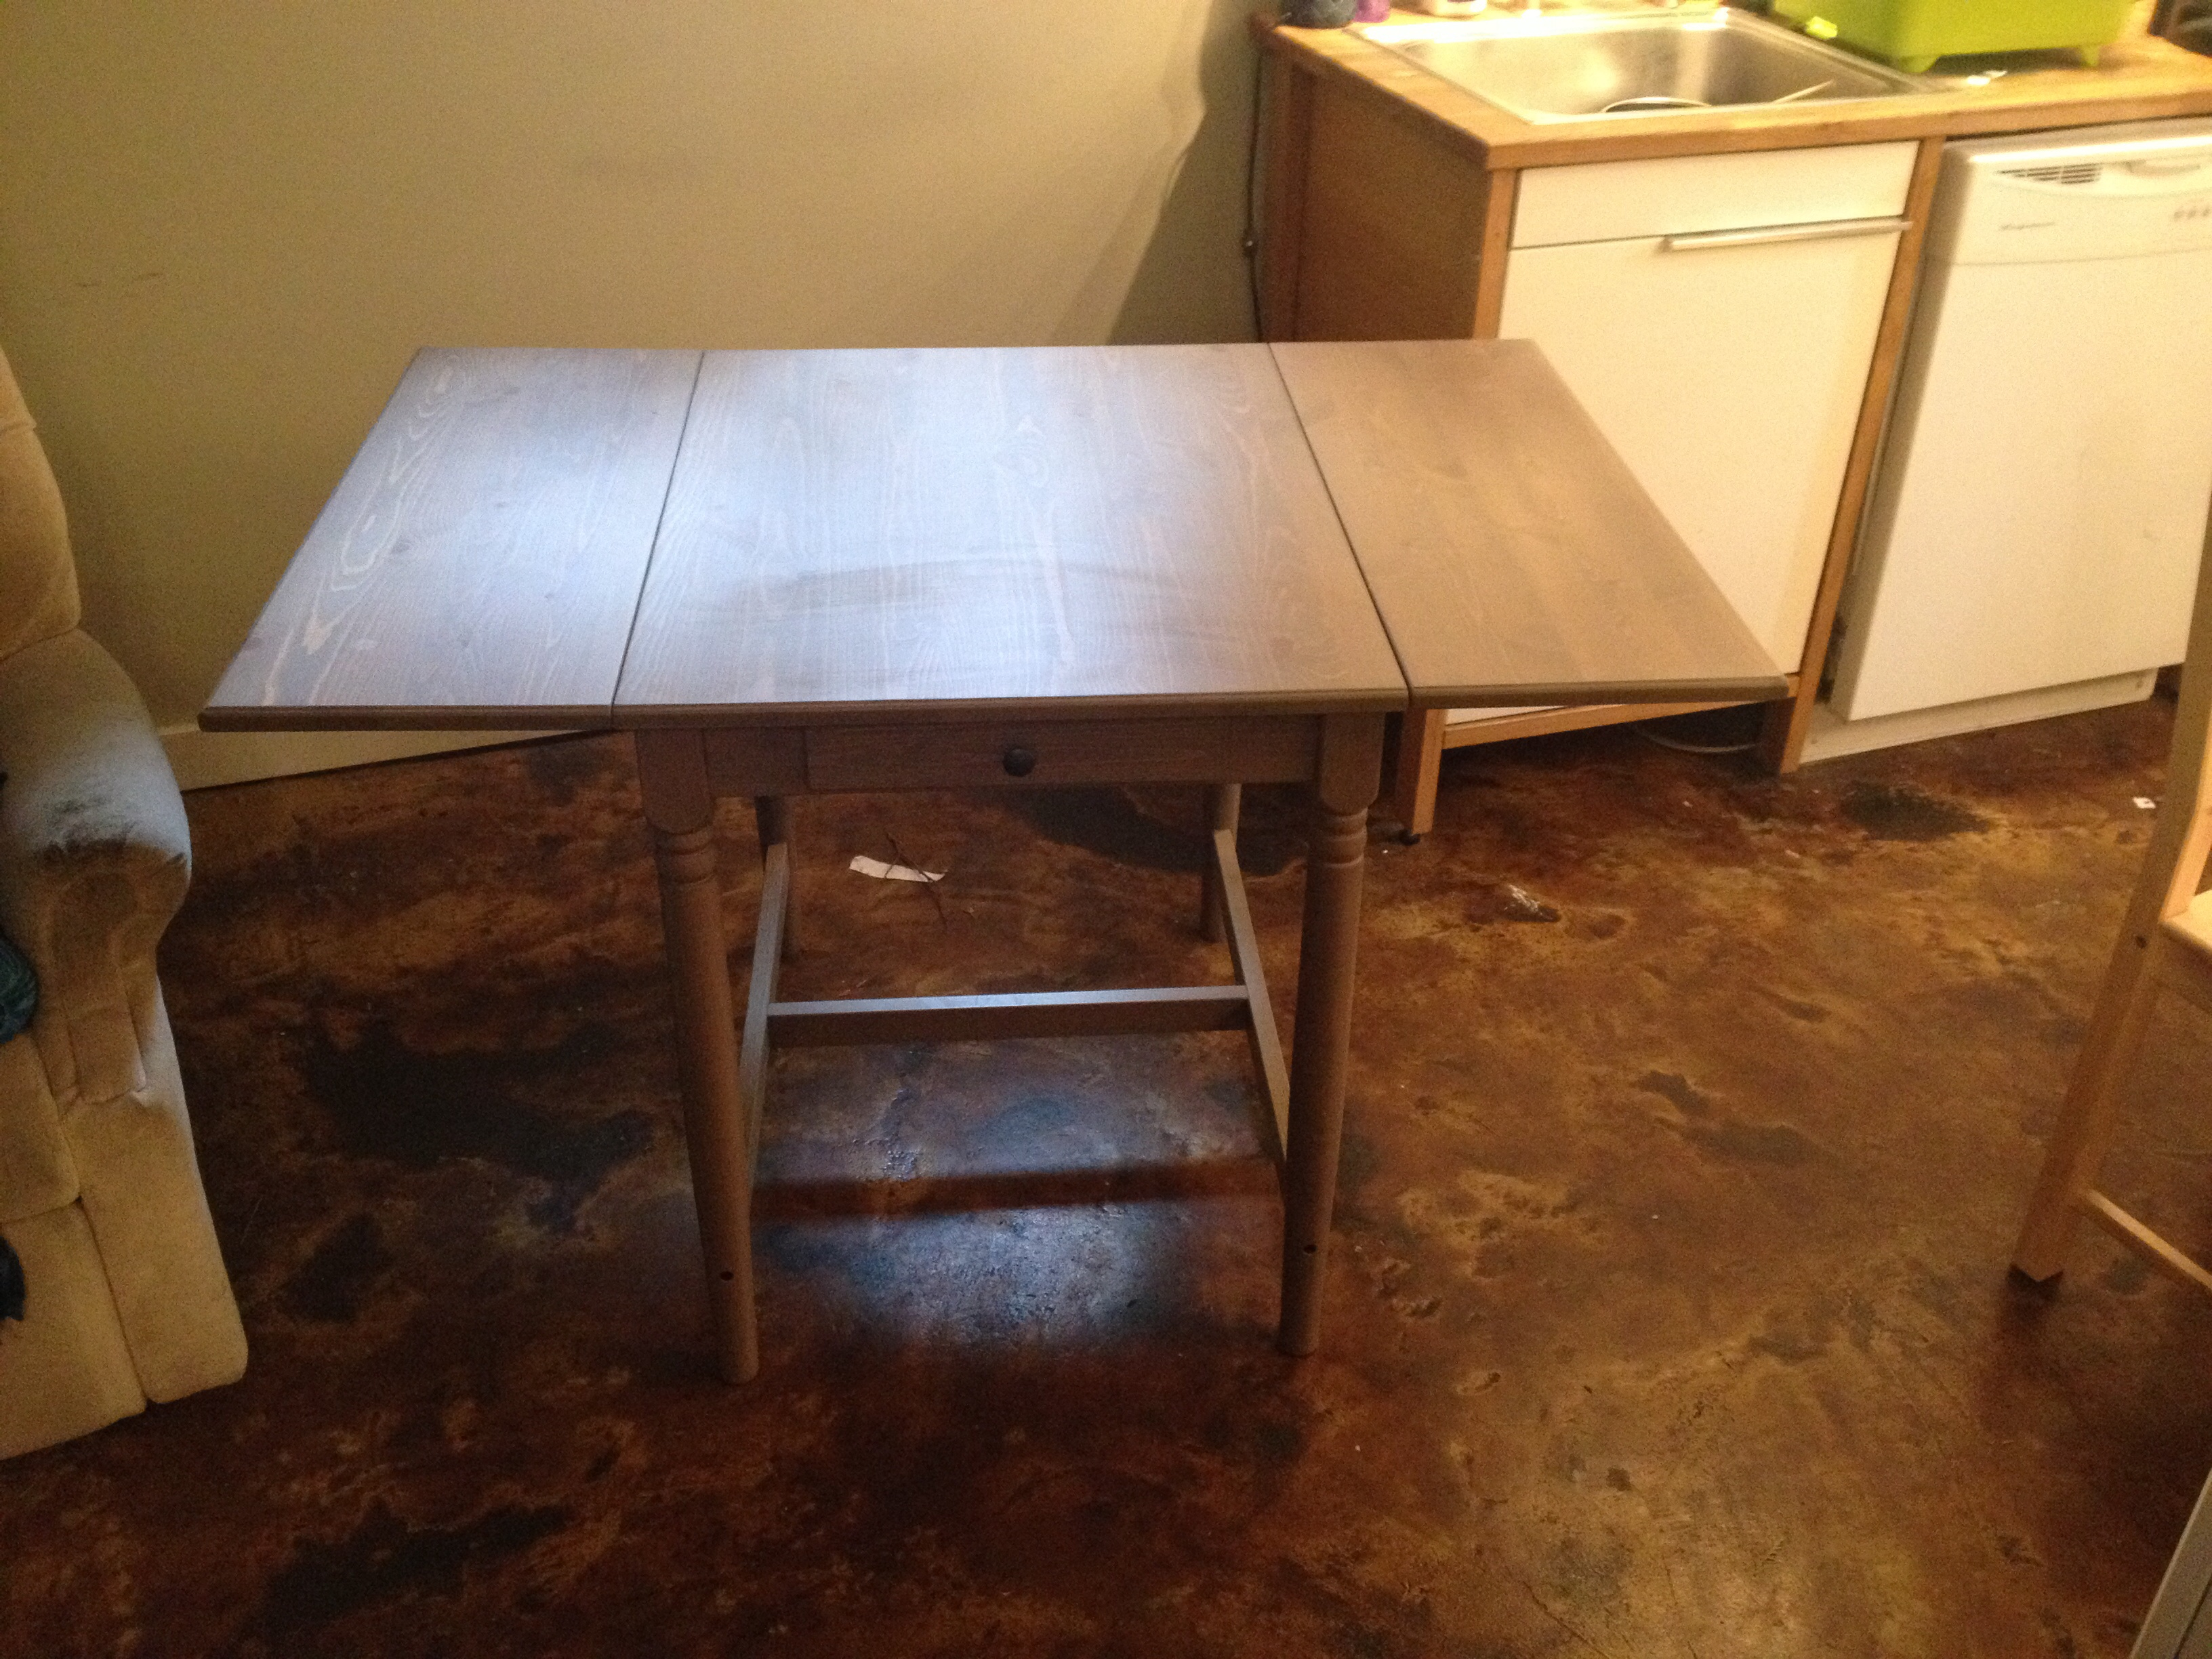 Ikea drop leaf table 100 obo shoreline lake forest park for Table 52 parking